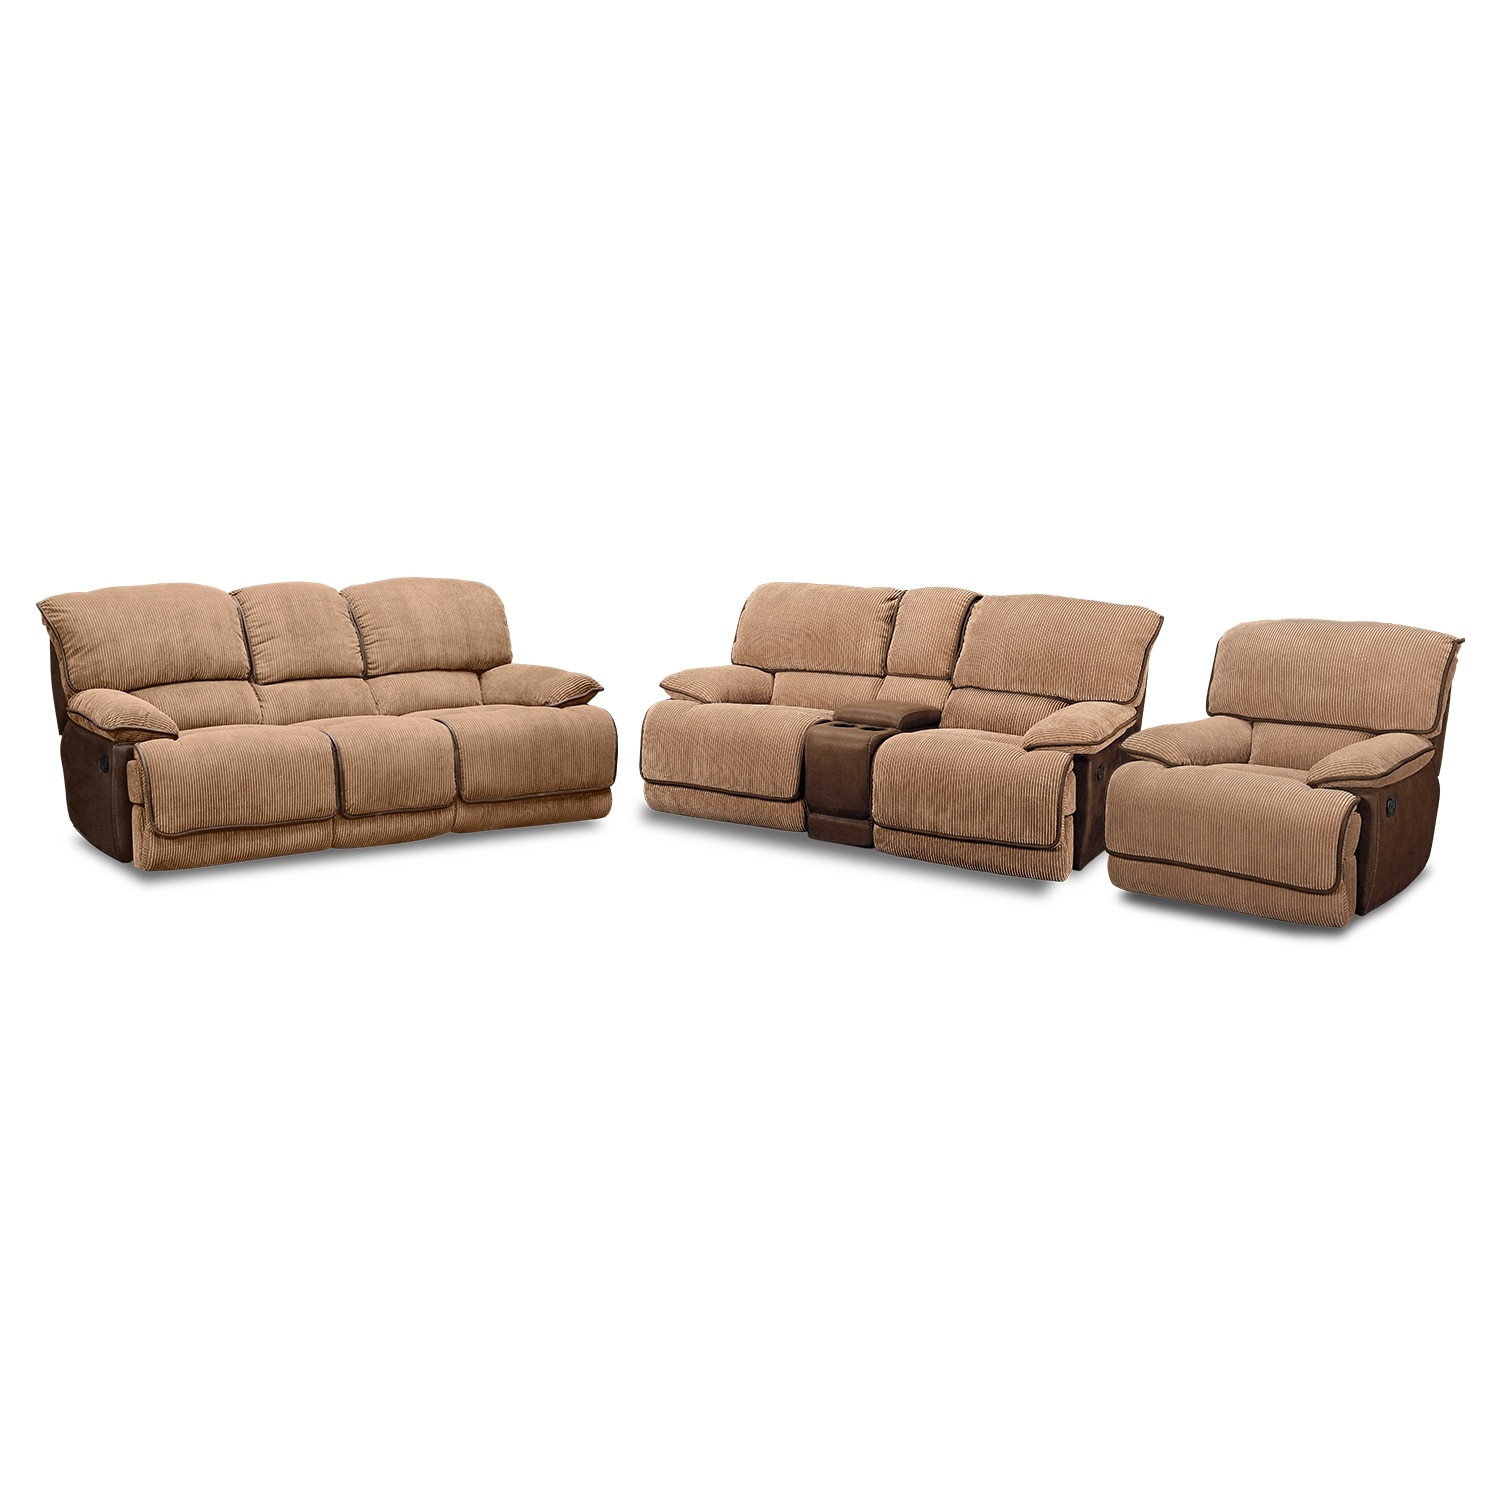 Laguna Reclining Sofa, Loveseat and Glider Recliner Set - Camel